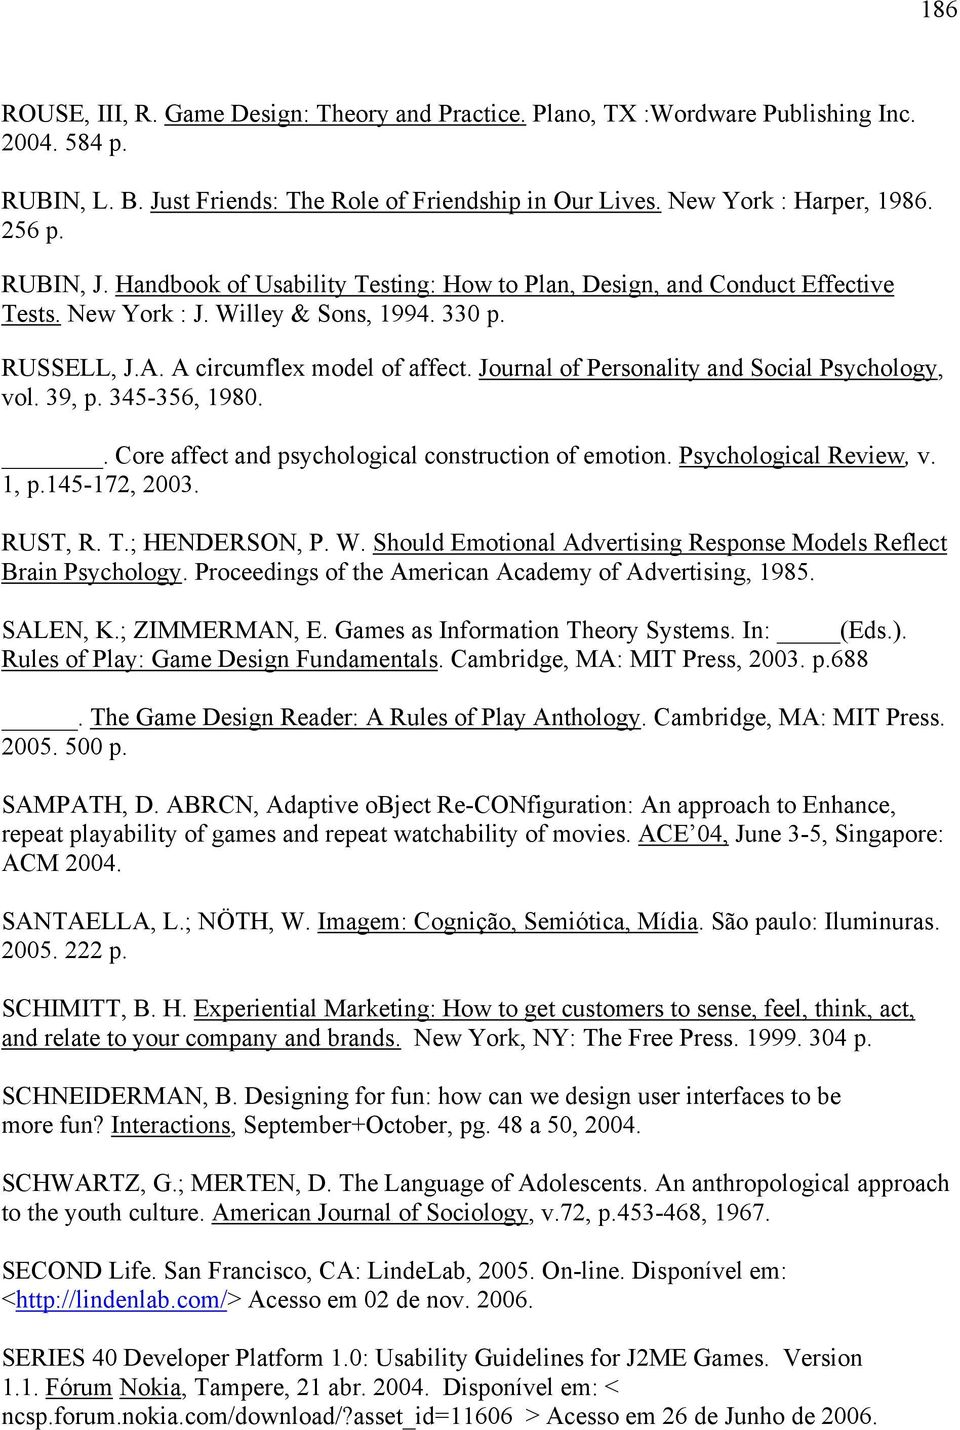 Journal of Personality and Social Psychology, vol. 39, p. 345-356, 1980.. Core affect and psychological construction of emotion. Psychological Review, v. 1, p.145-172, 2003. RUST, R. T.; HENDERSON, P.